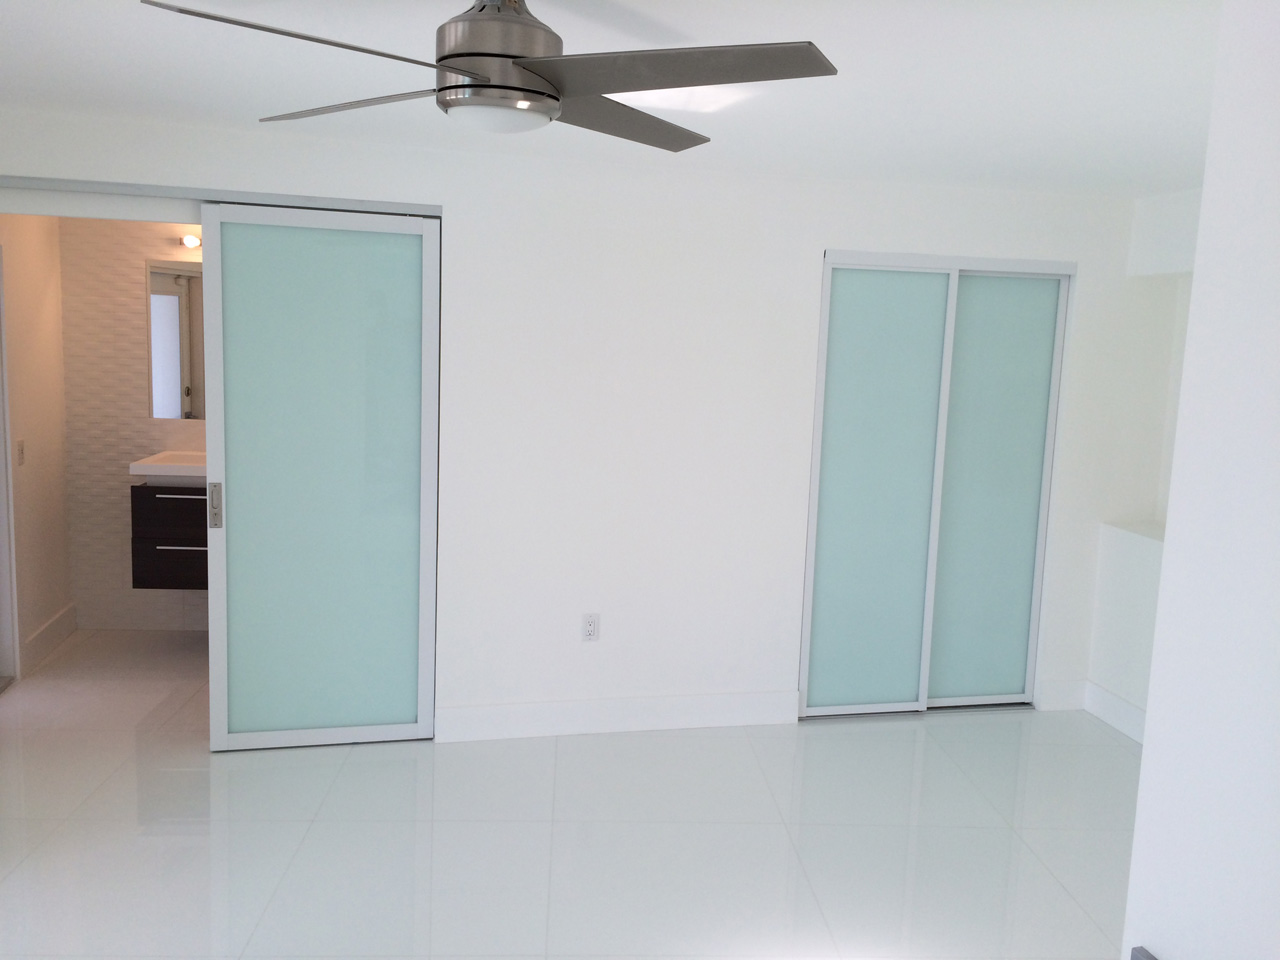 Custom sliding glass doors throughout this property for sale